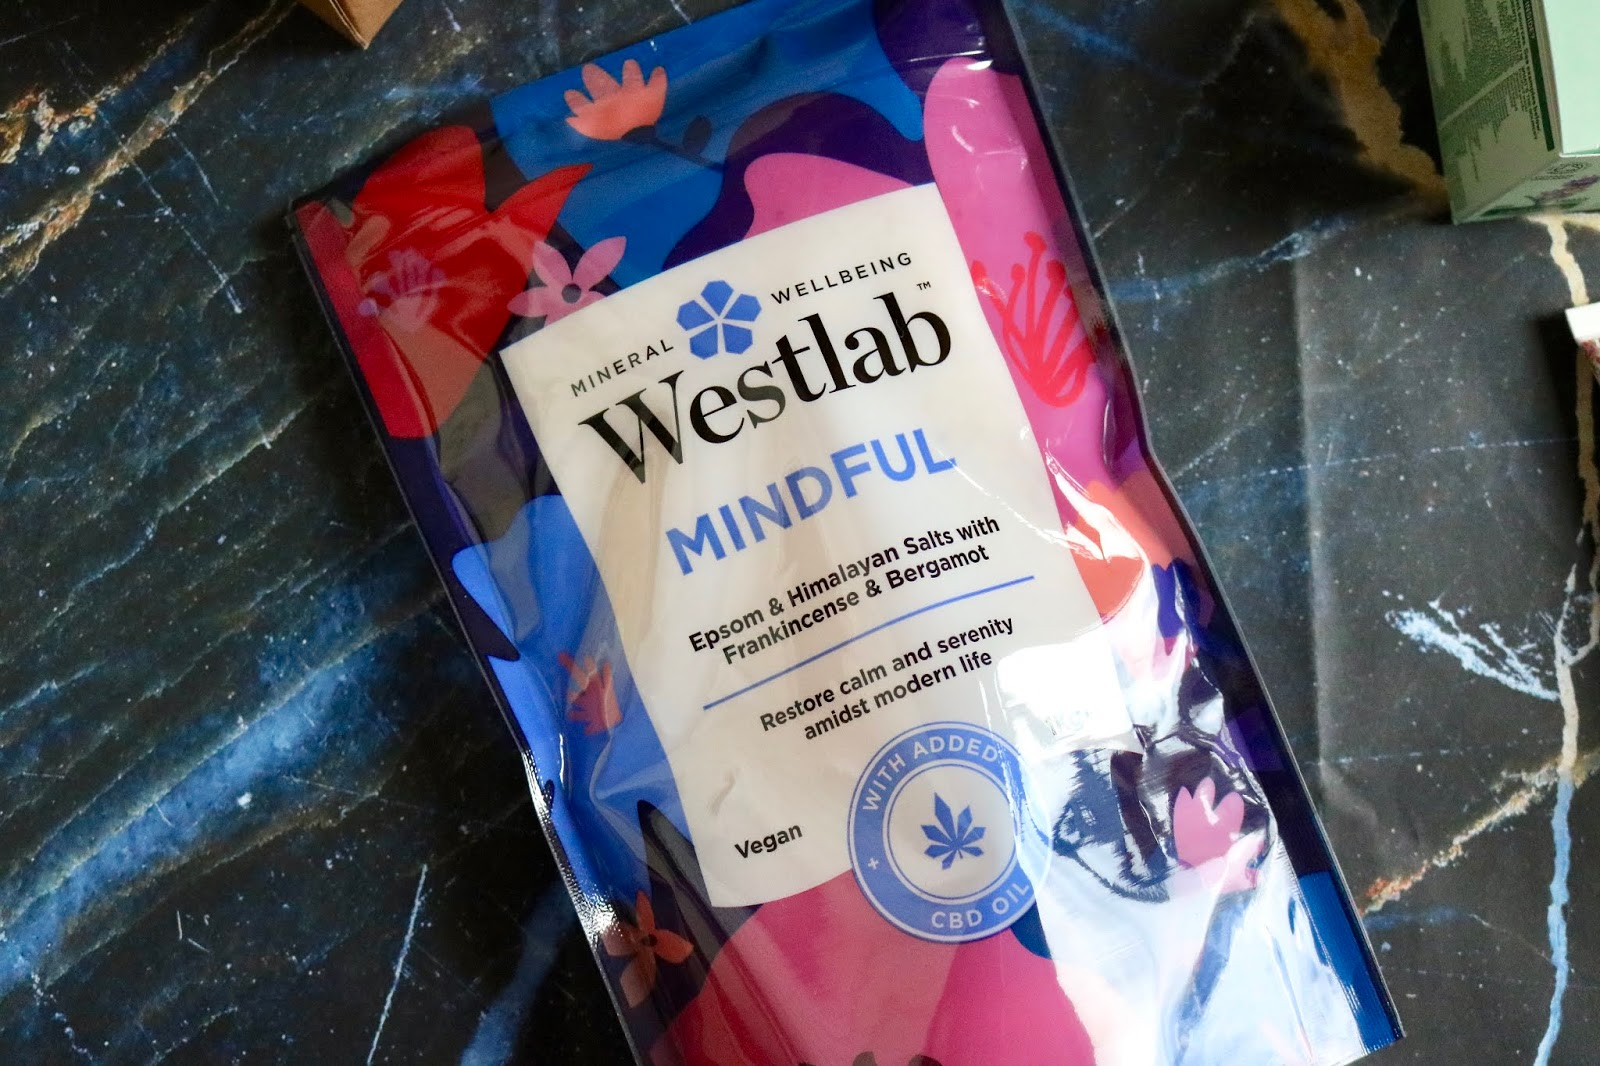 WESTLAB MINDFUL BATHING SALTS